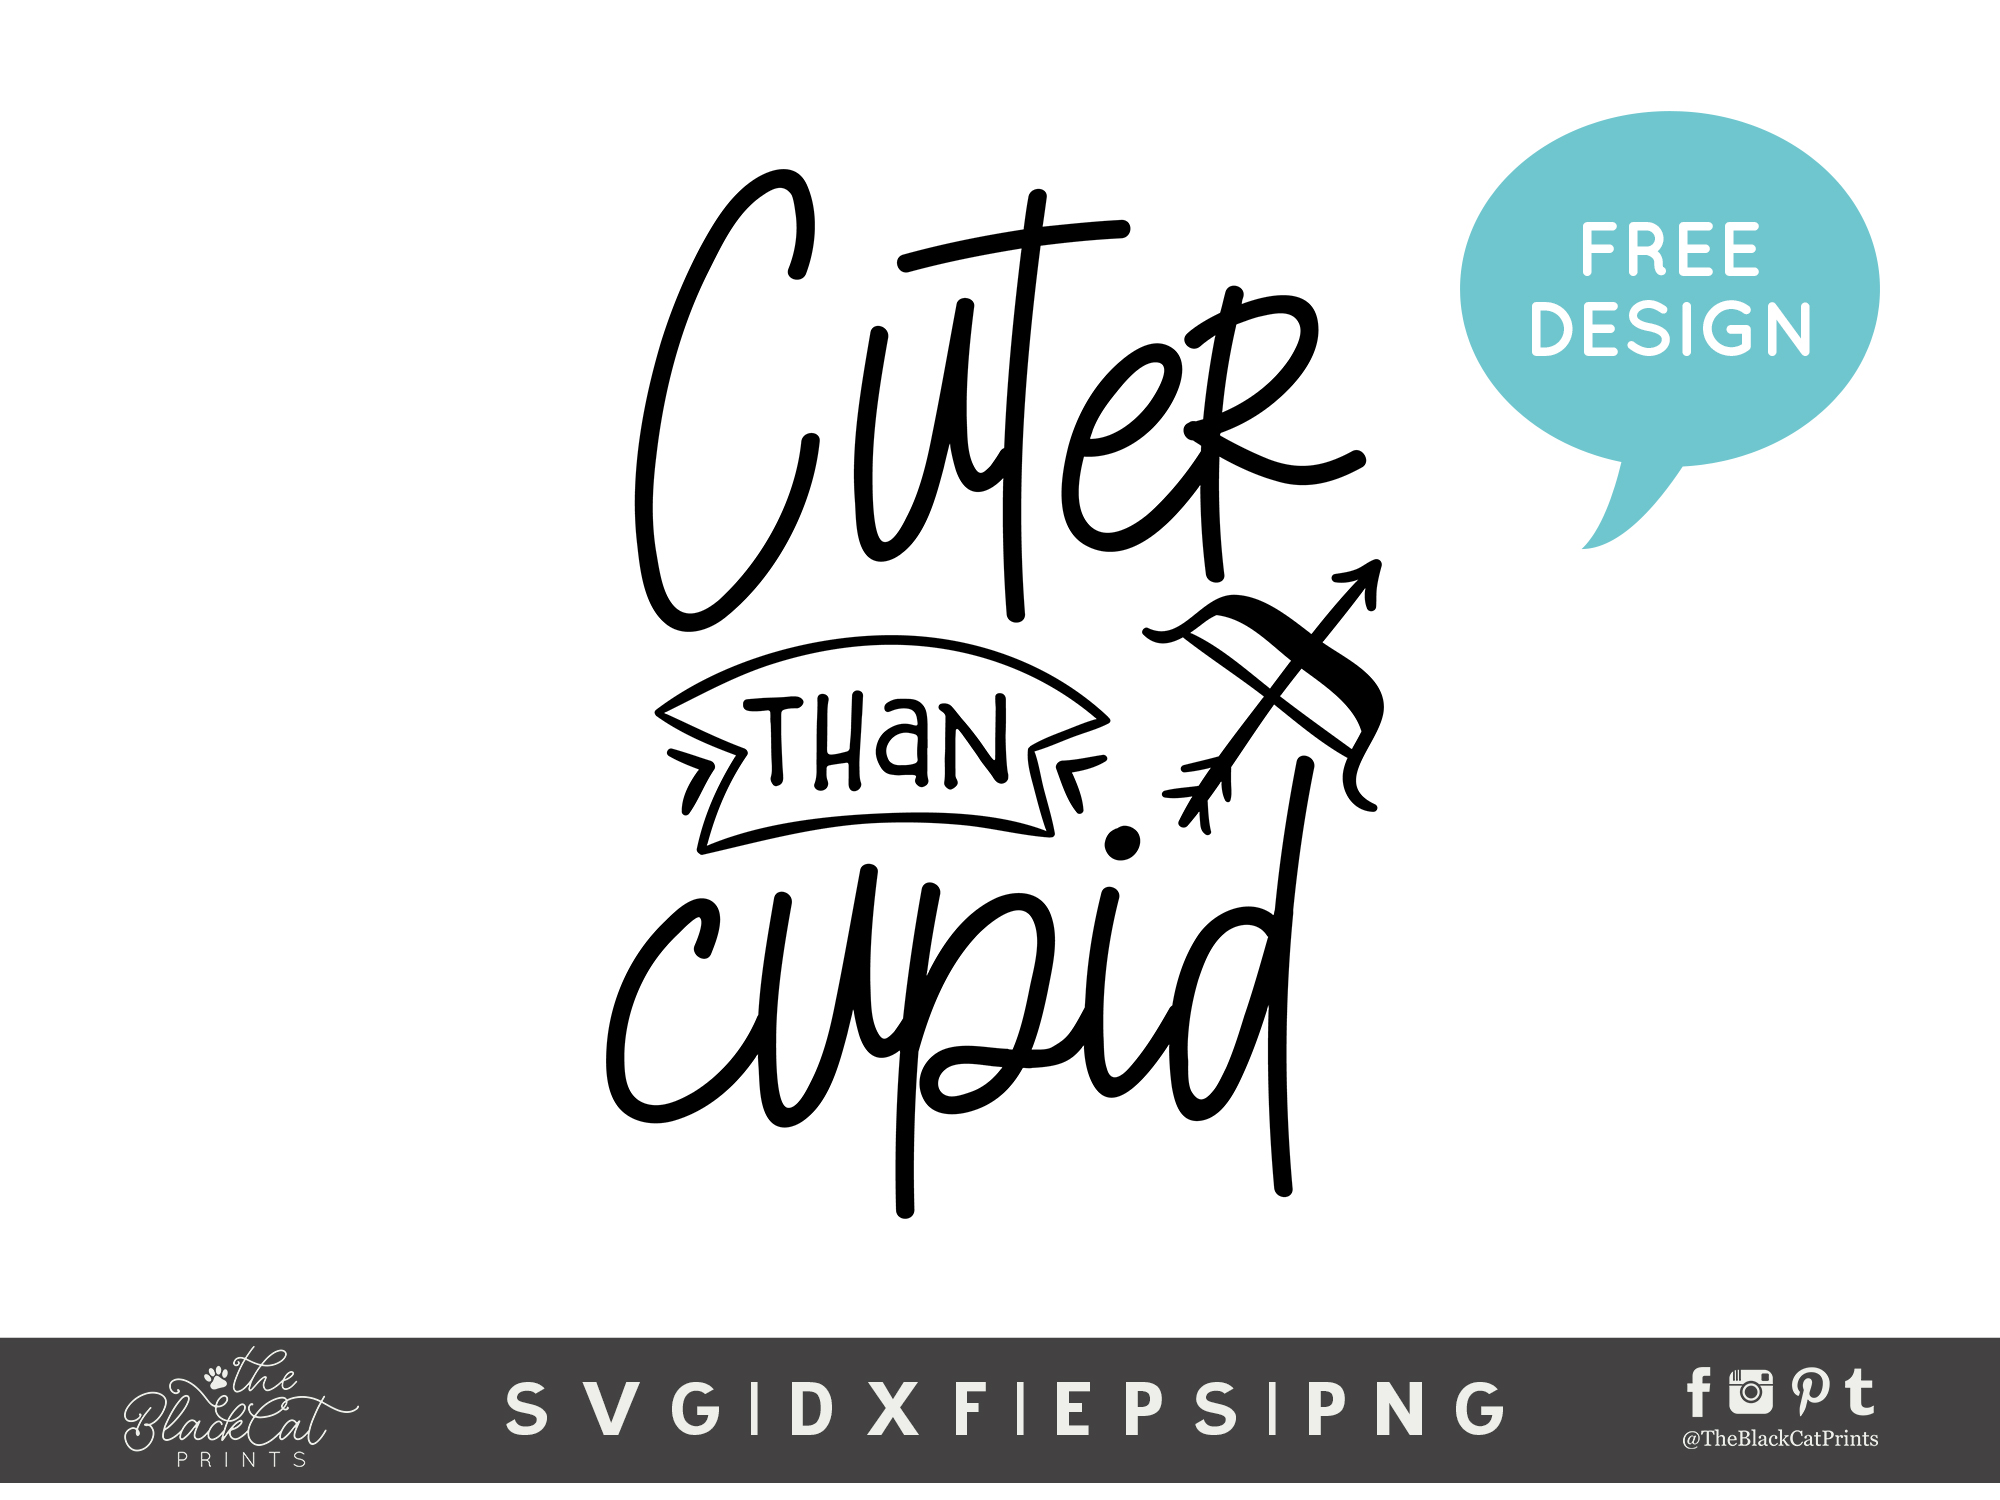 Cuter Than Cupid Svg Dxf Png Eps 2 Theblackcatprints